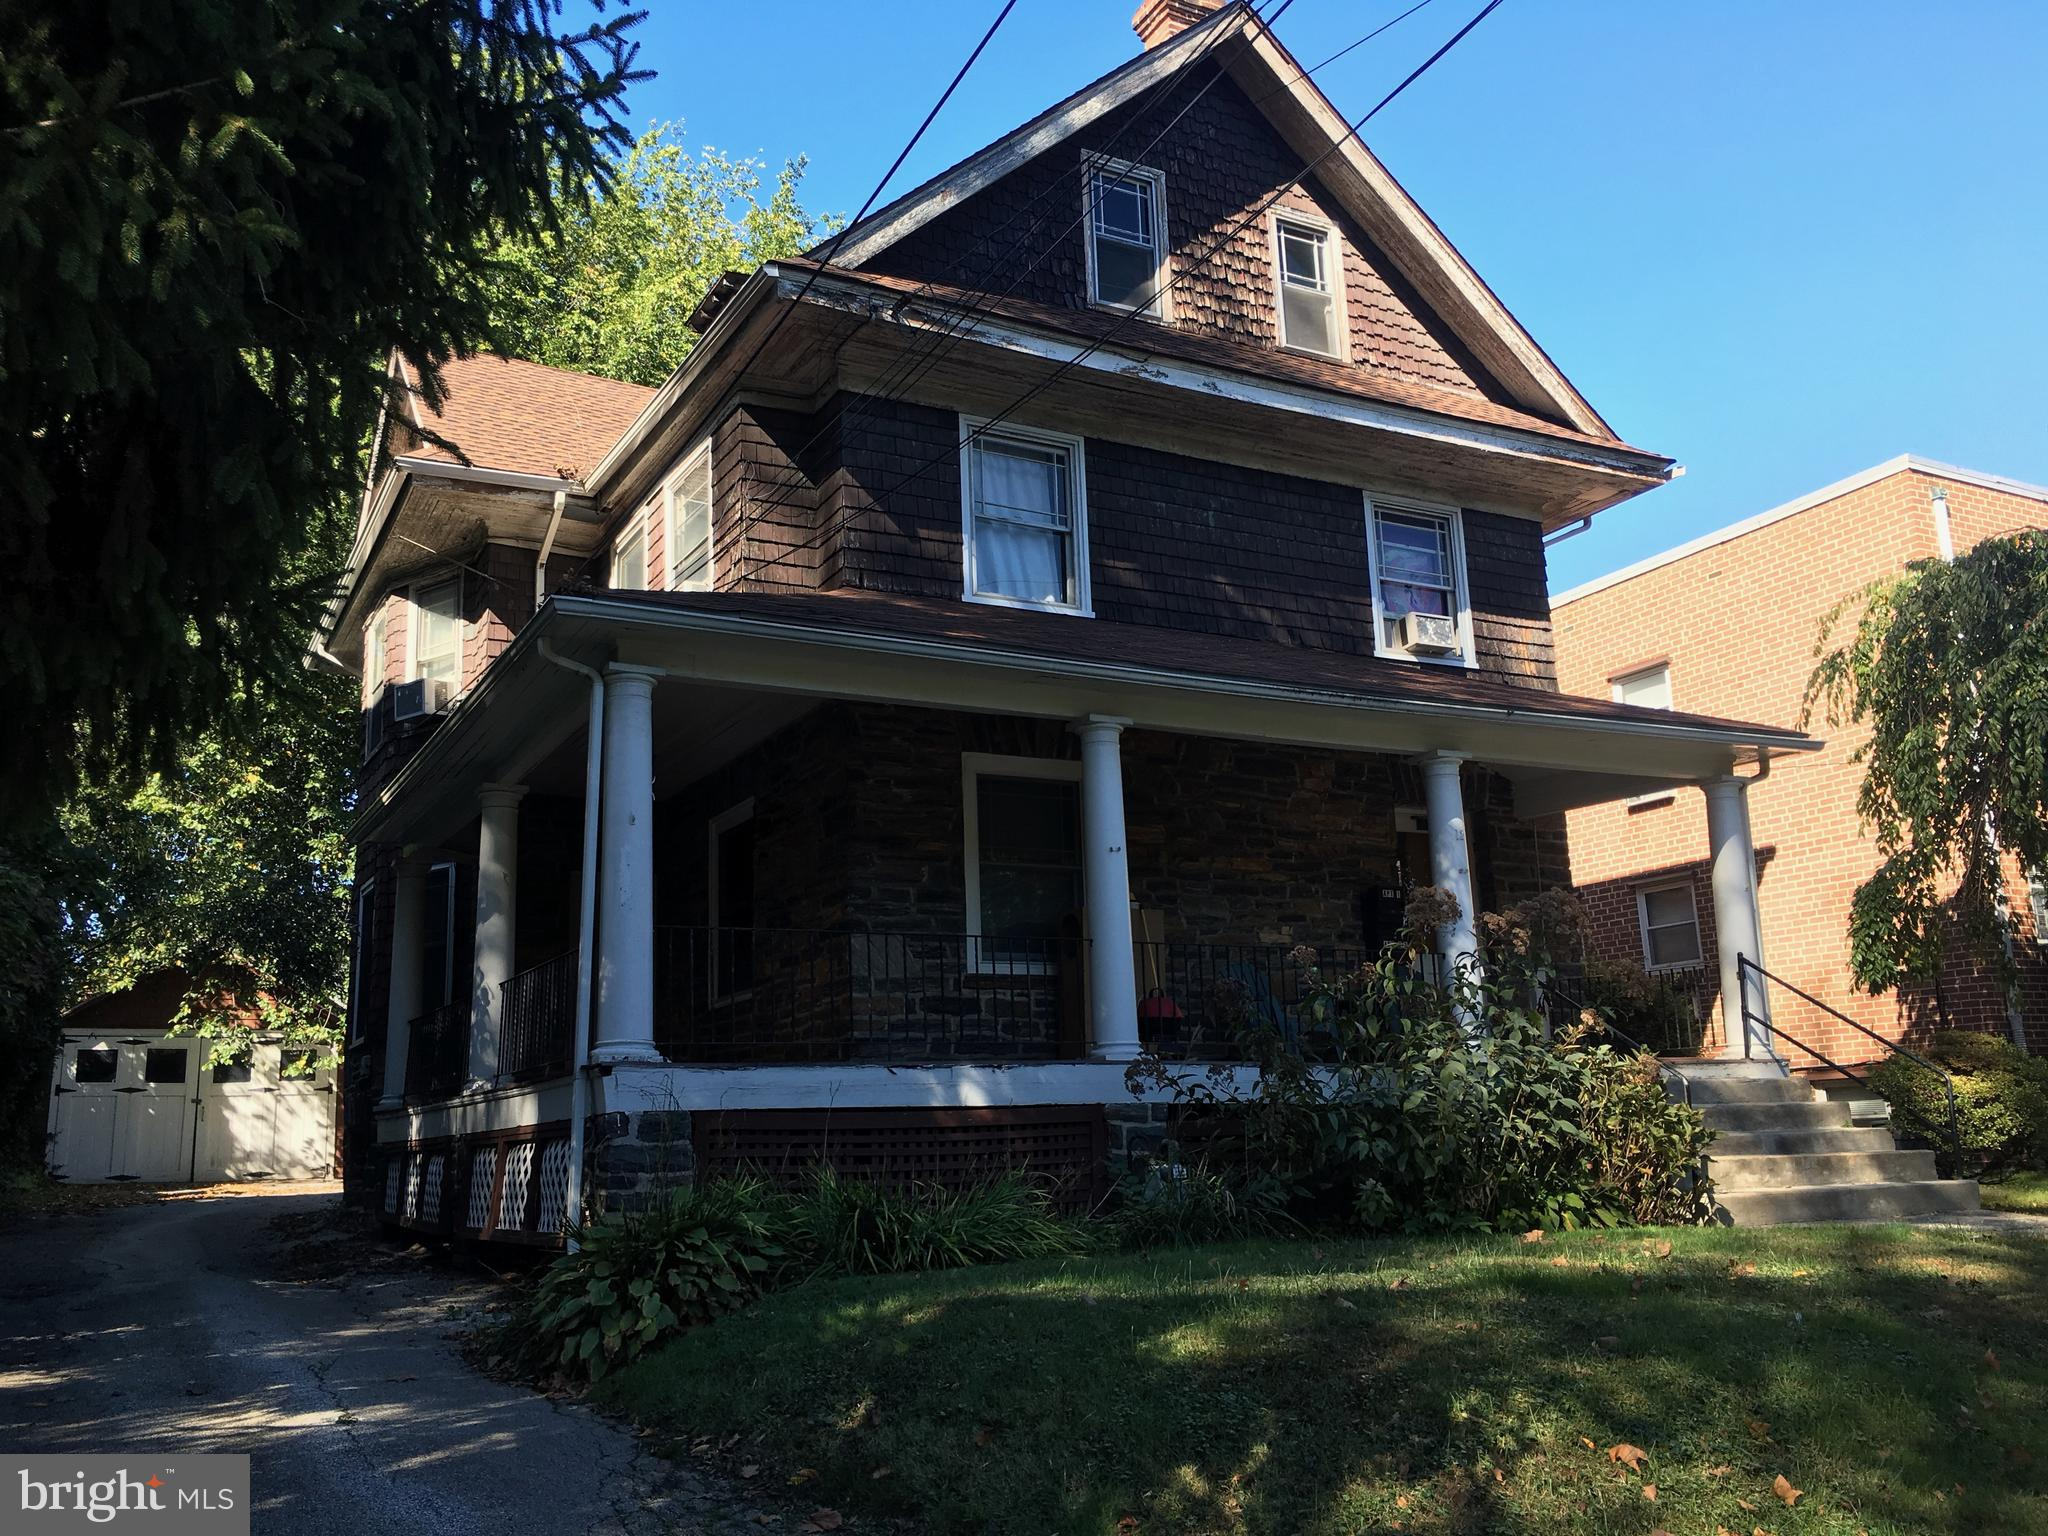 12 S LINDEN AVENUE, UPPER DARBY, PA 19082